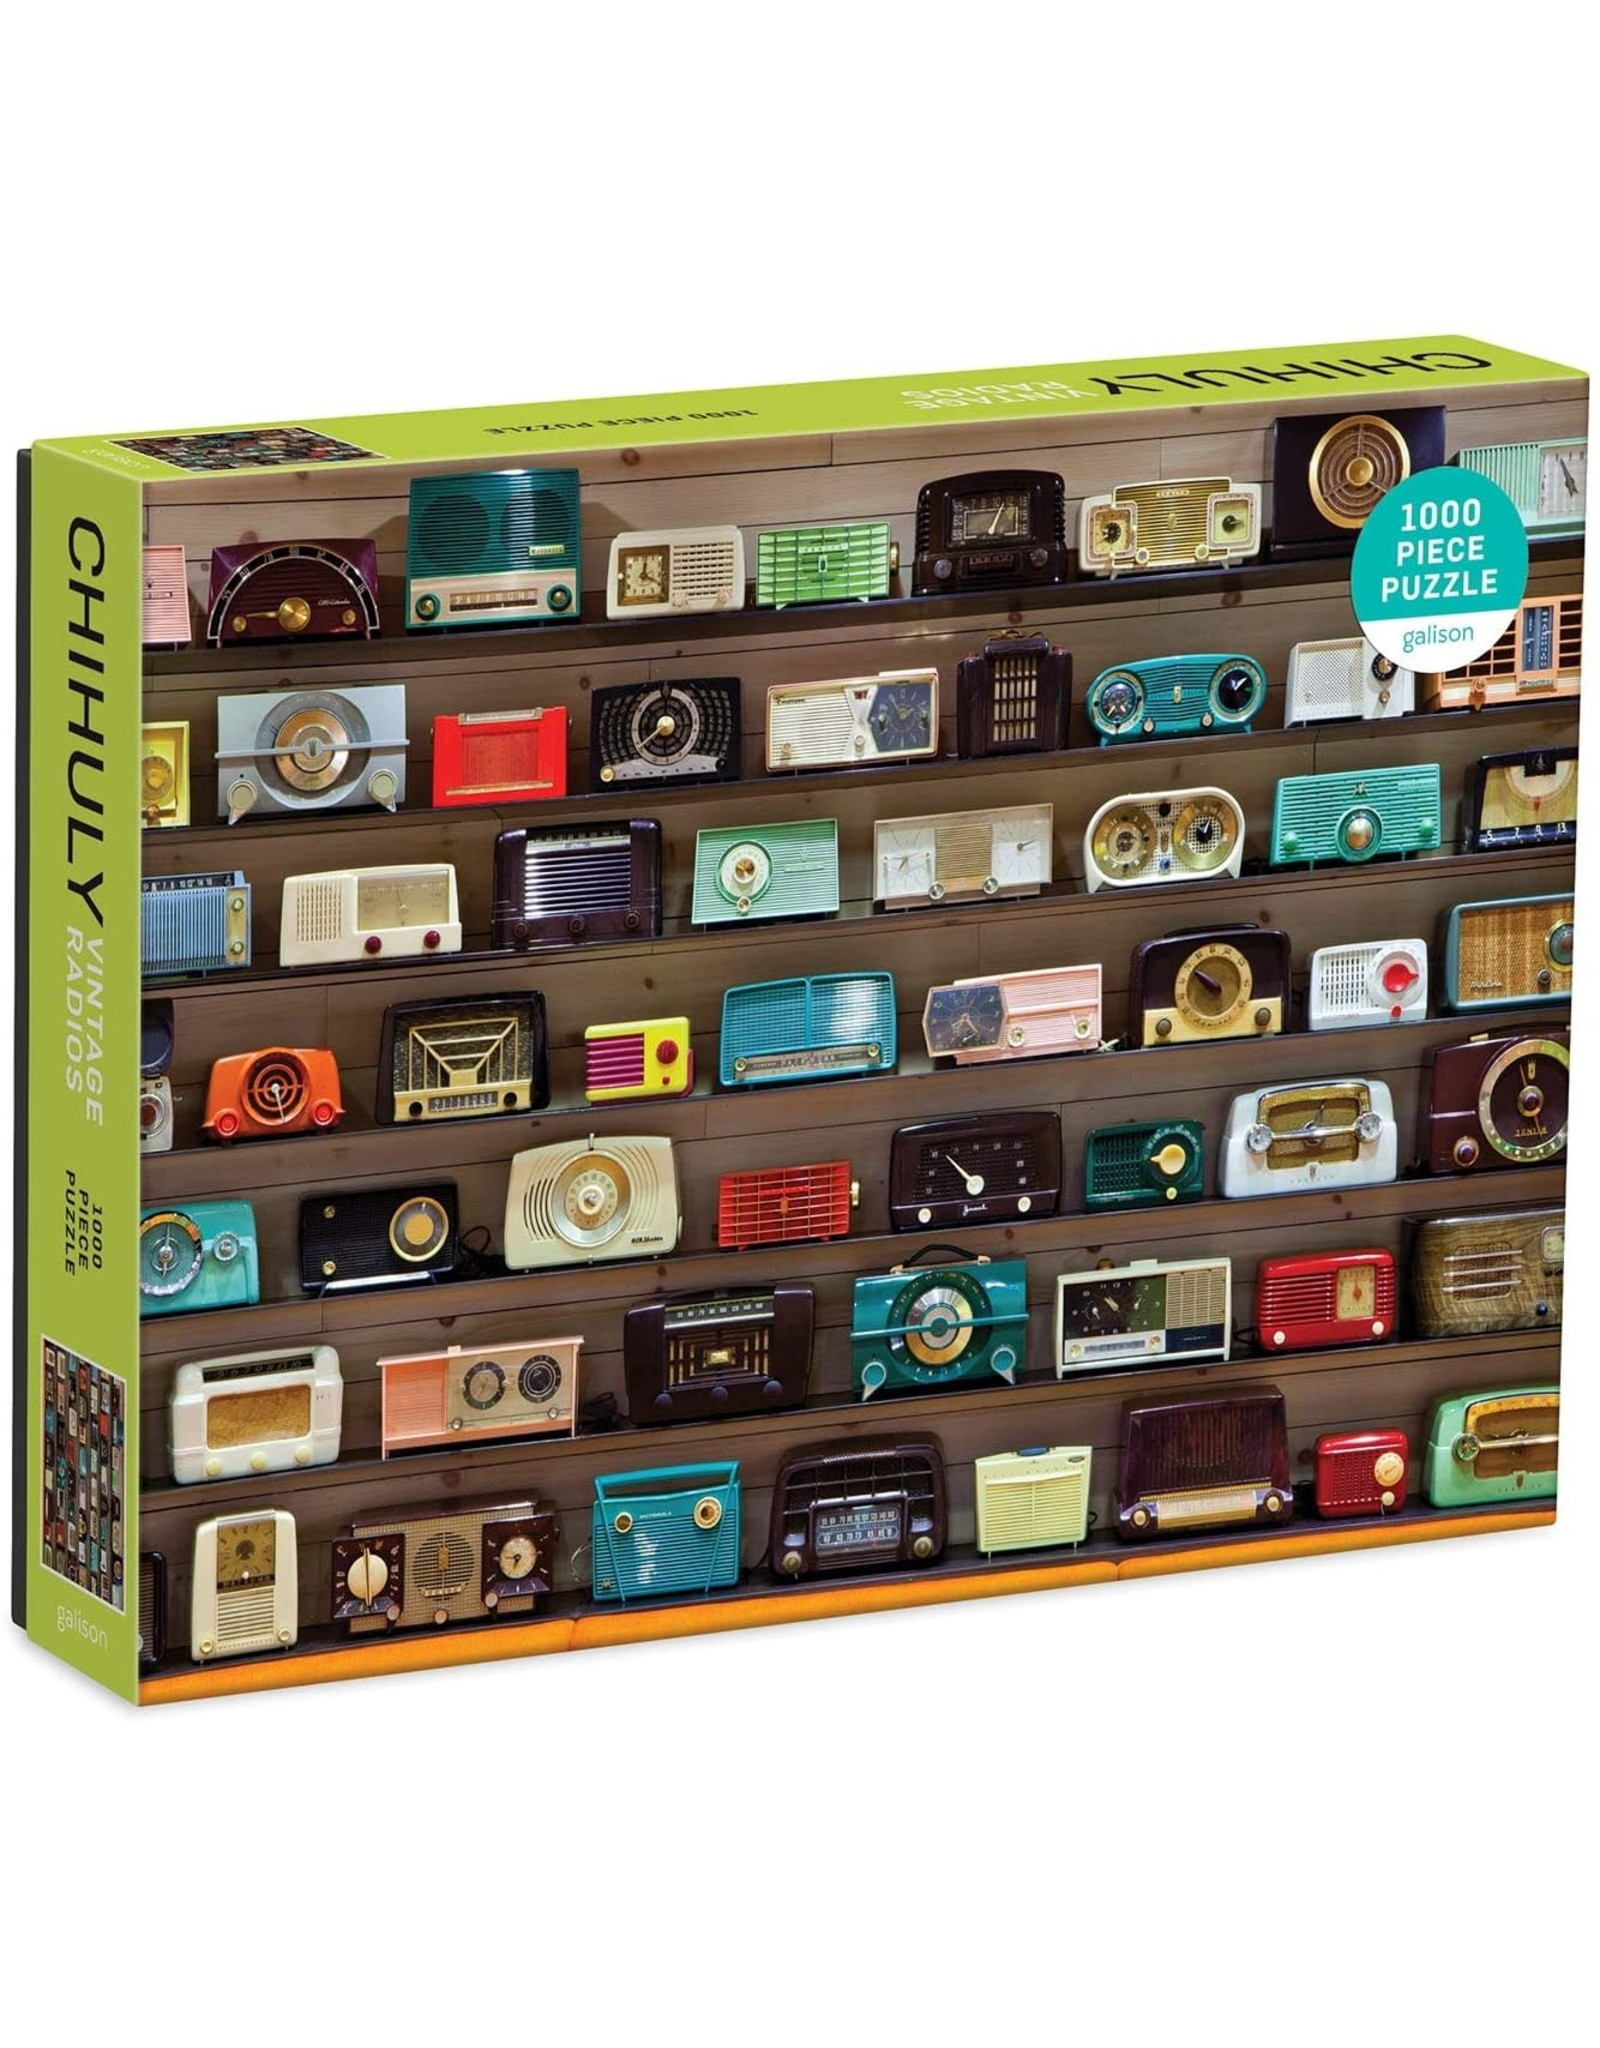 Galison Chihuly Vintage Radios 1000 Piece Puzzle